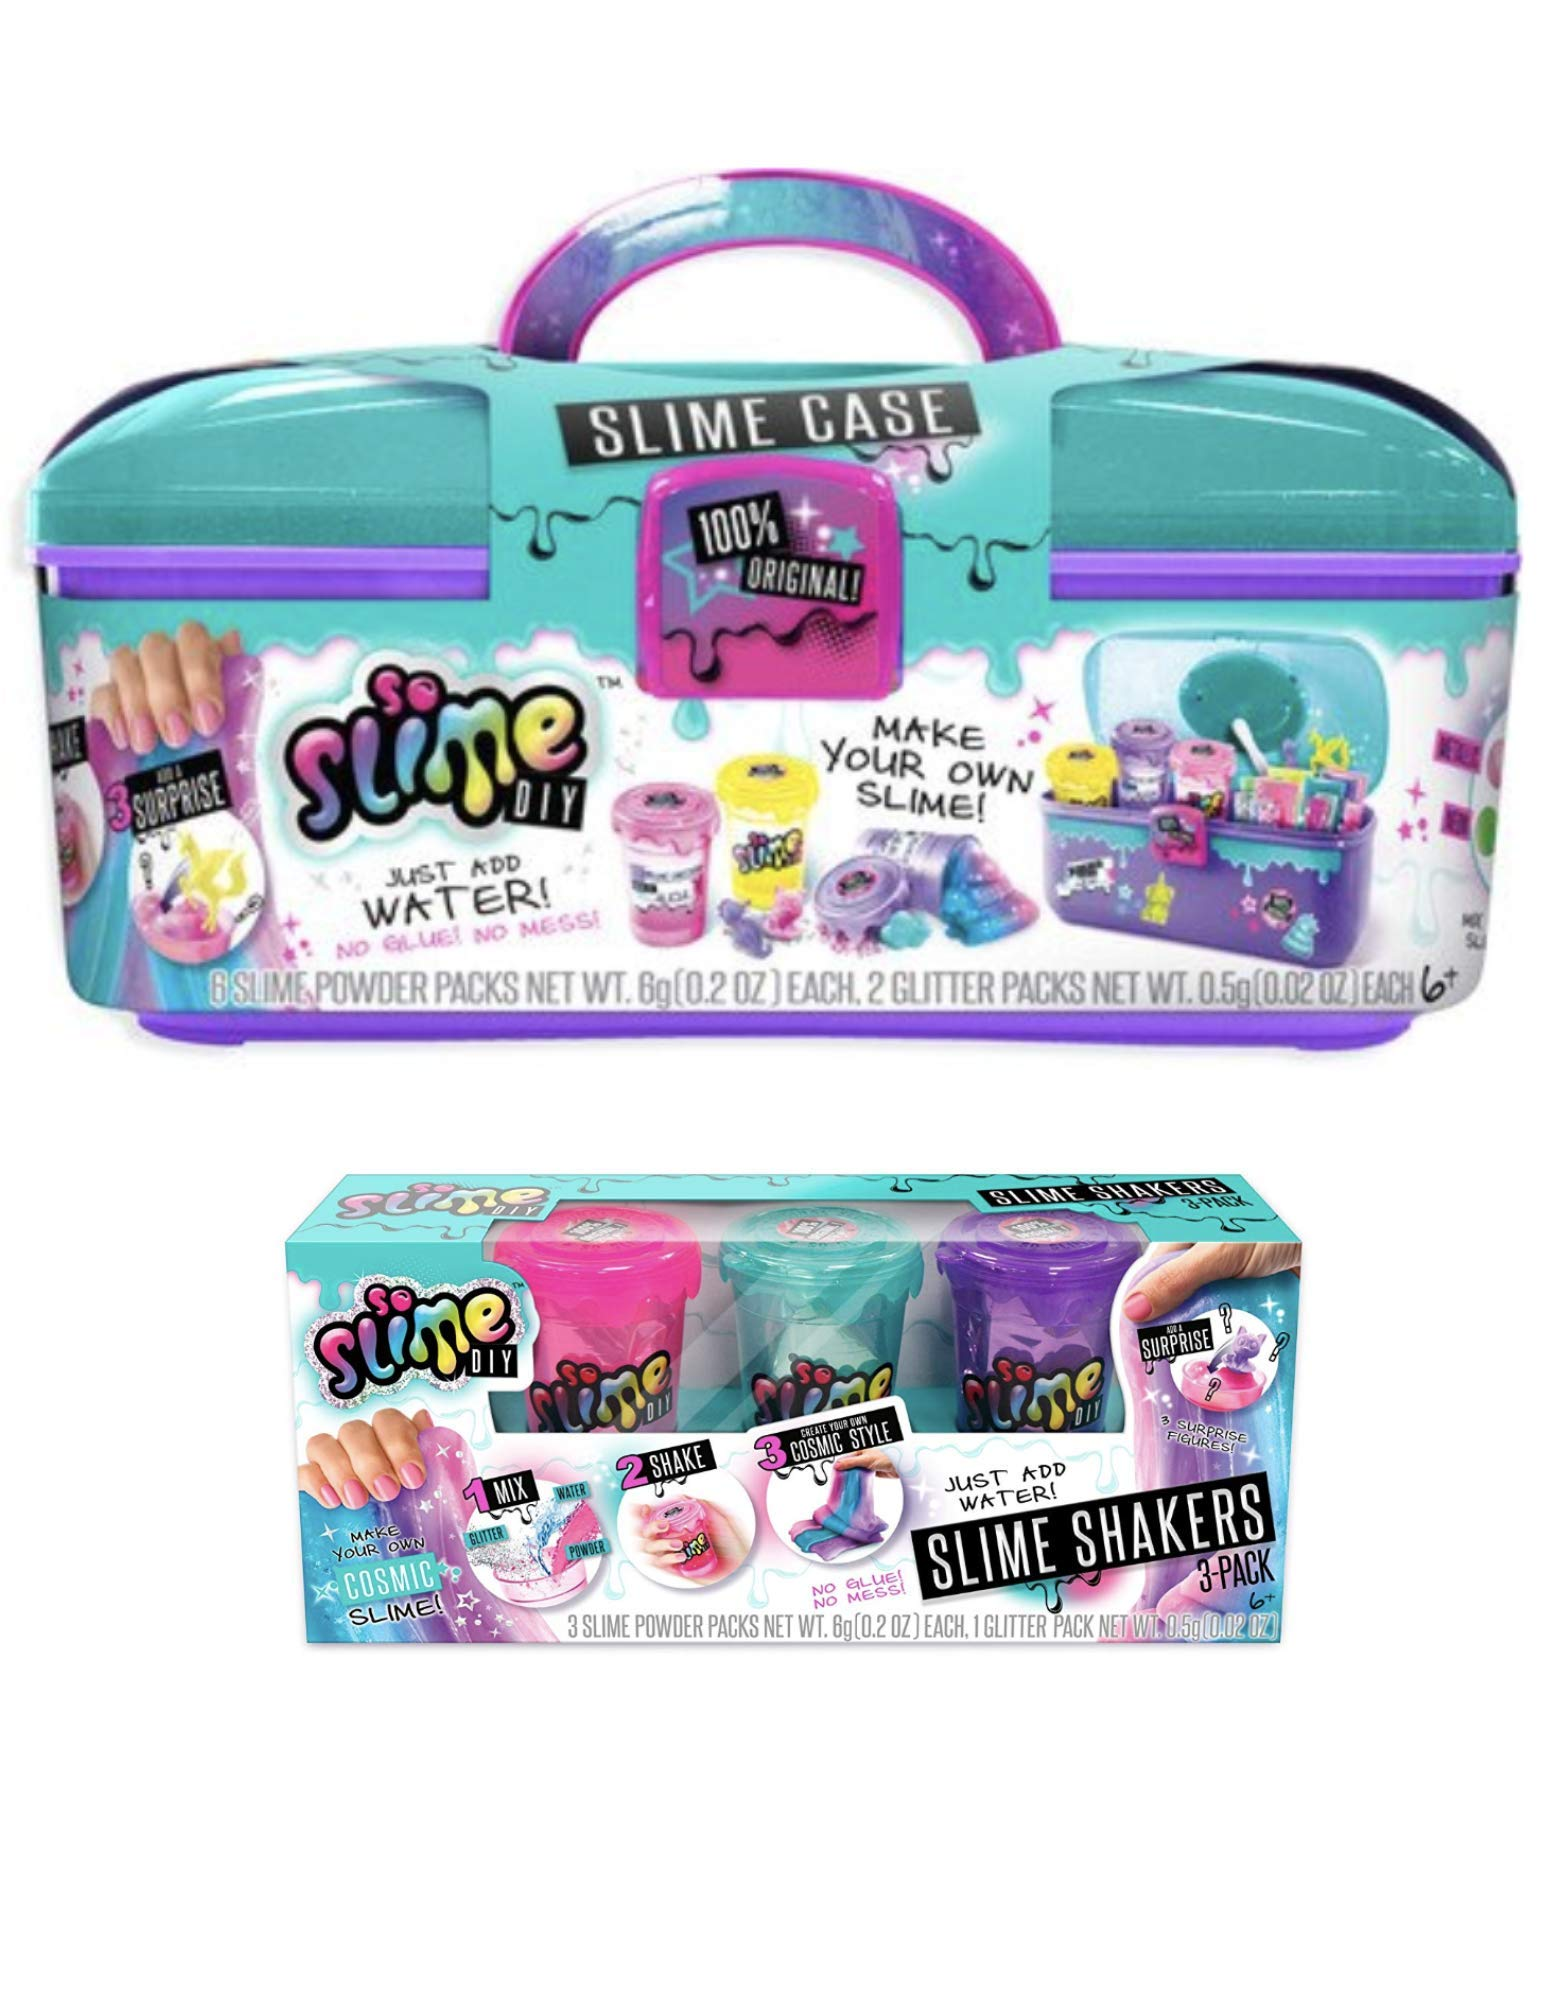 So Slime DIY Slime Case Storage Set + Cosmic Slime Three Pack!